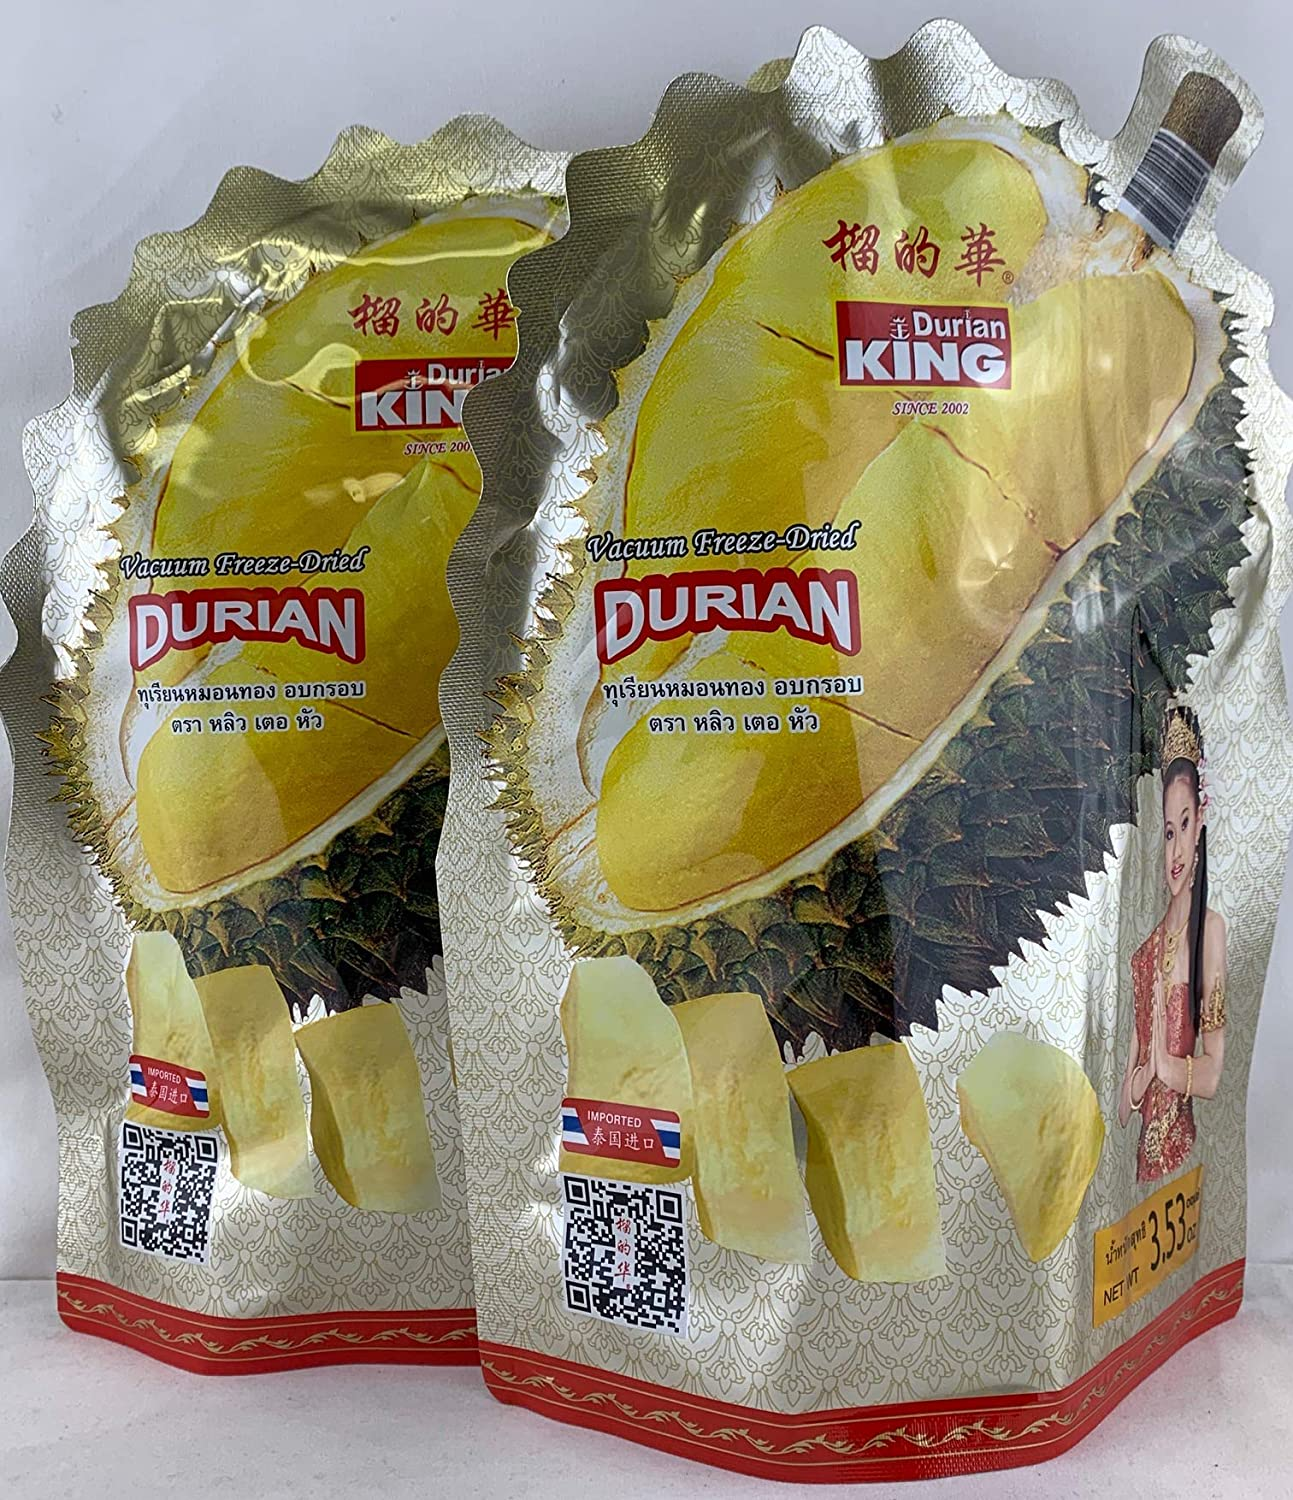 Durian Seattle Max 67% OFF Mall KING Vacuum Freeze Dried Fruit - Monthong Chunk